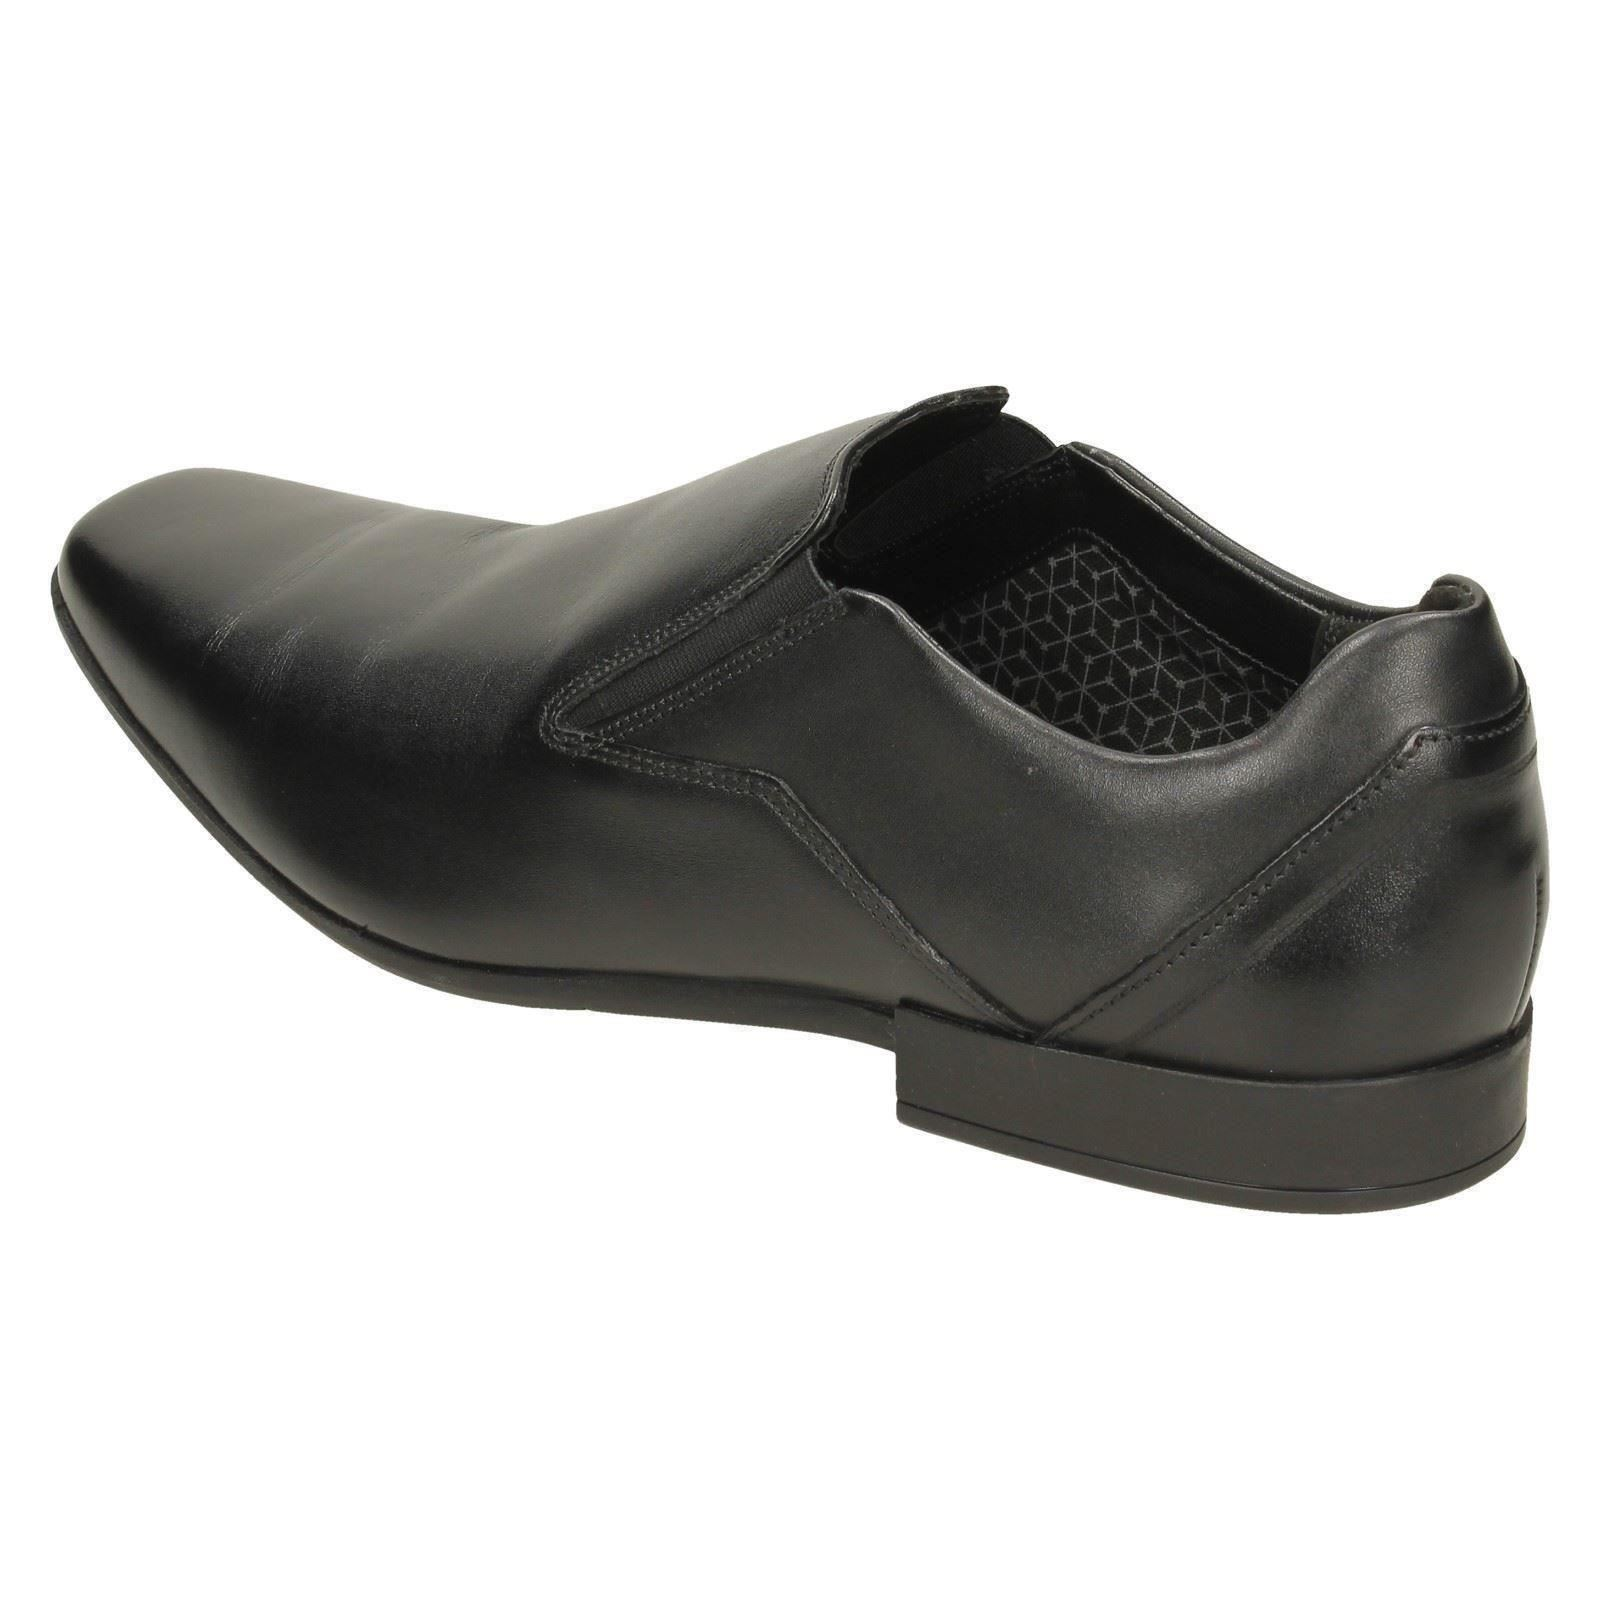 Uomo Schuhes Clarks Formal Slip On Schuhes Uomo Glement Slip 2efc54